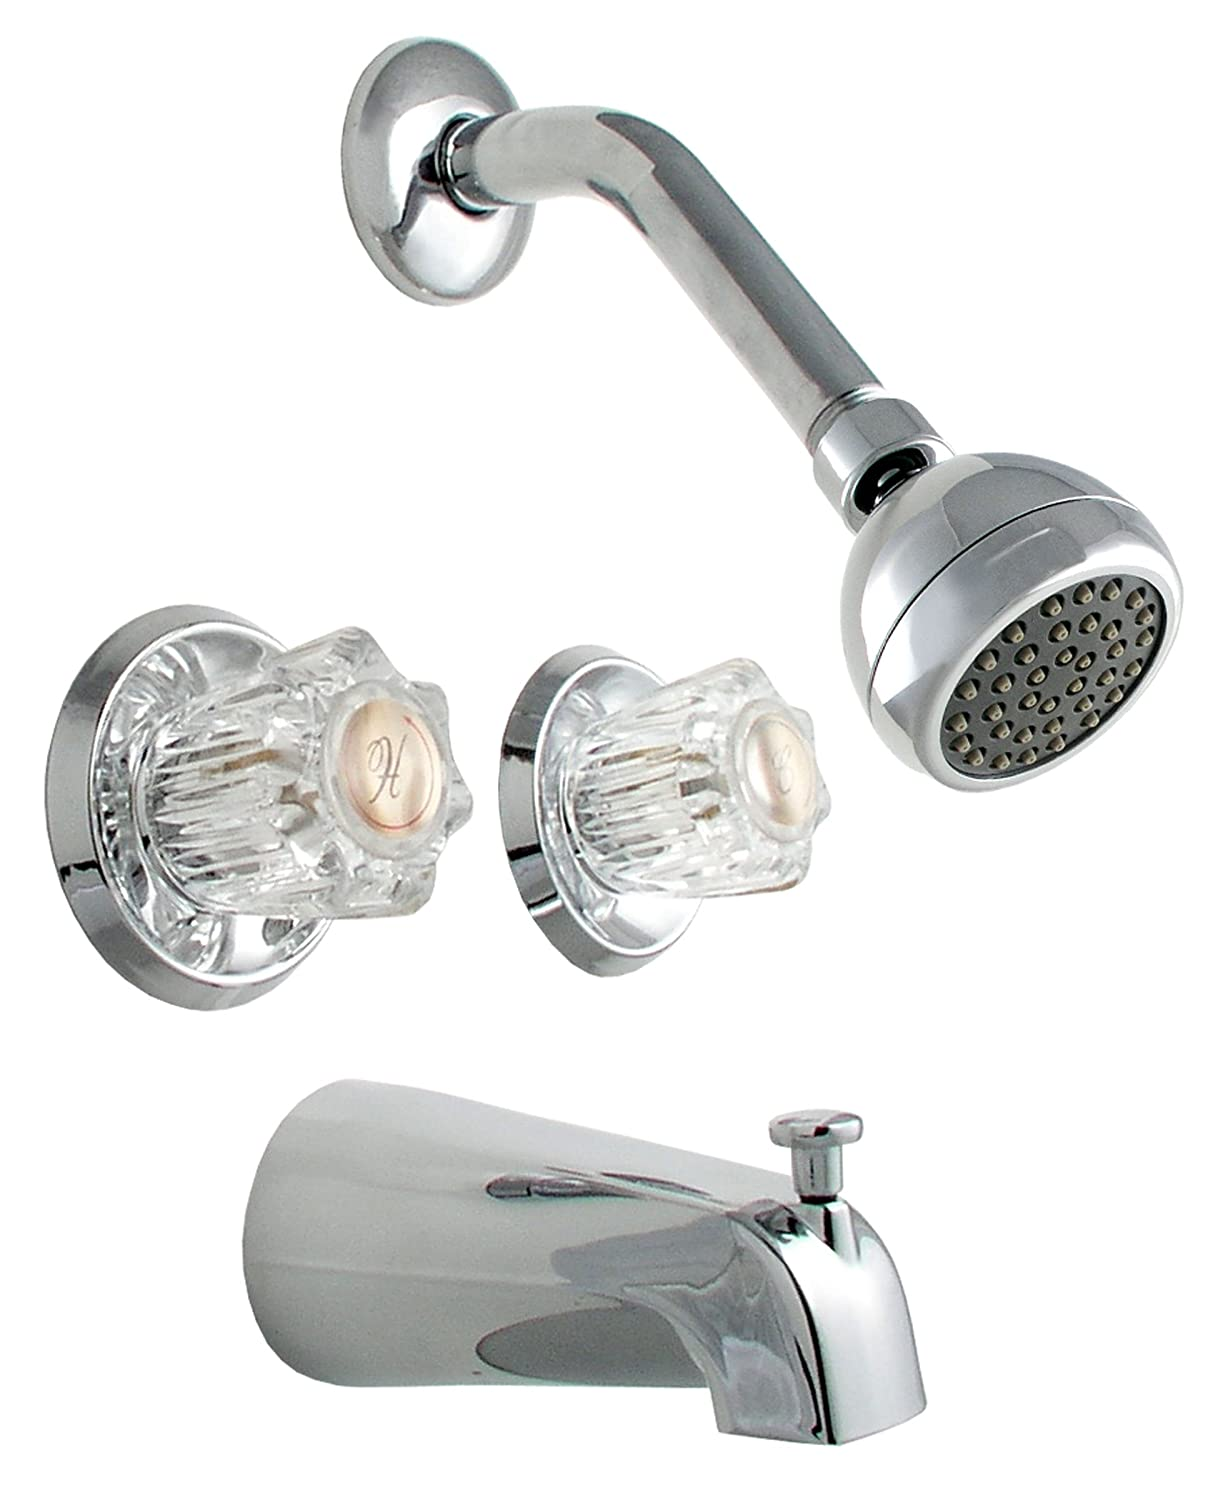 LDR 011 8700 Double Handle Tub and Shower Faucet, Chrome - Two ...